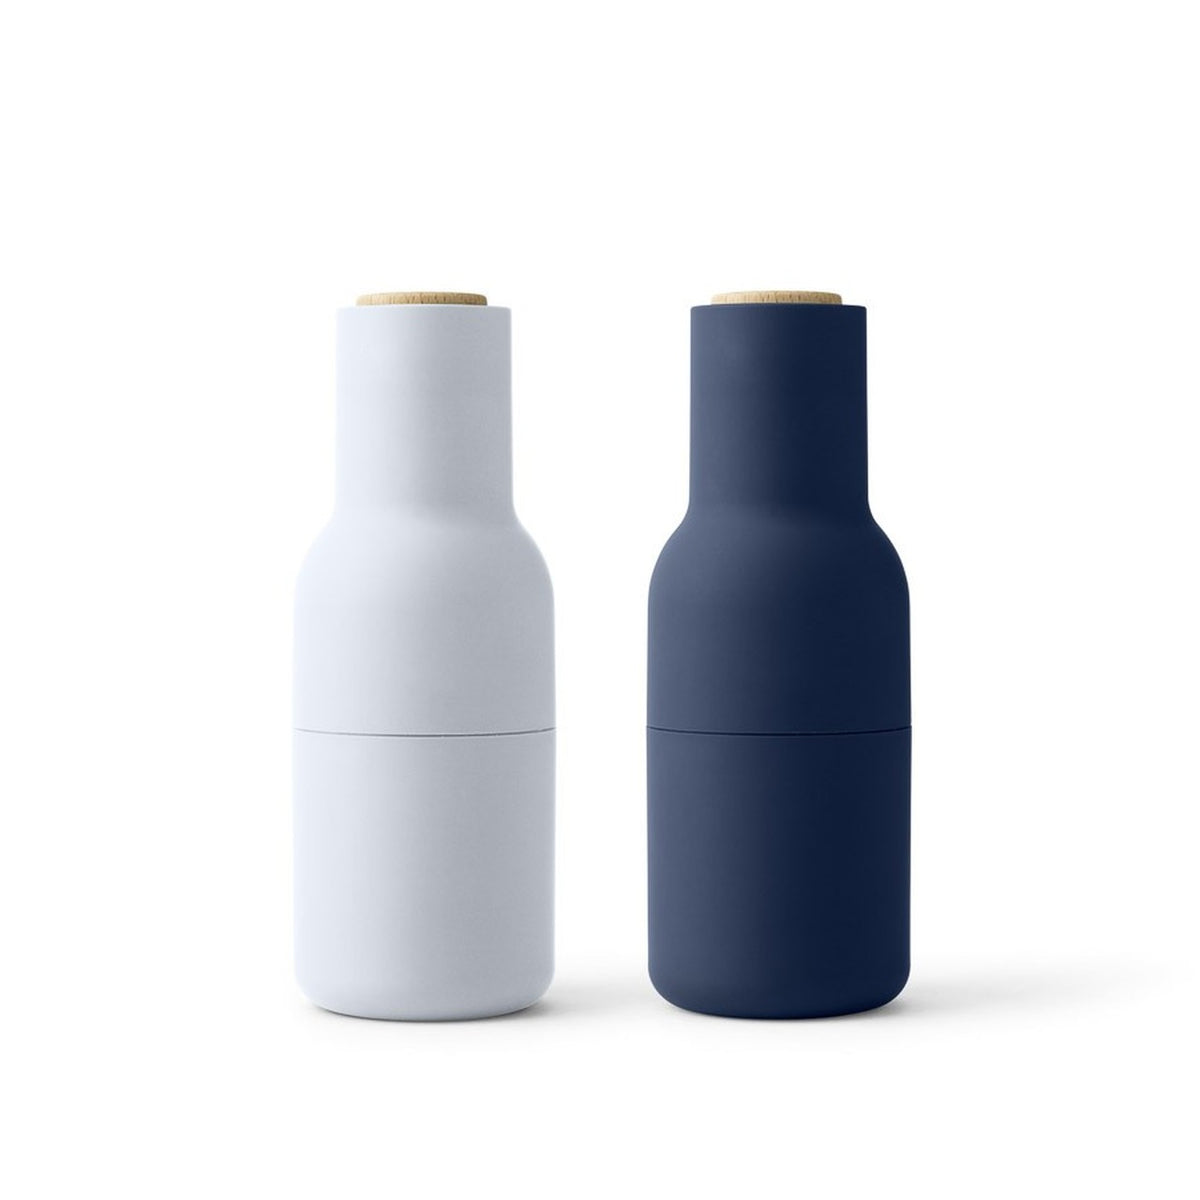 Menu Bottle Grinder Classic Blue, Wooden Top, by Norm Architects